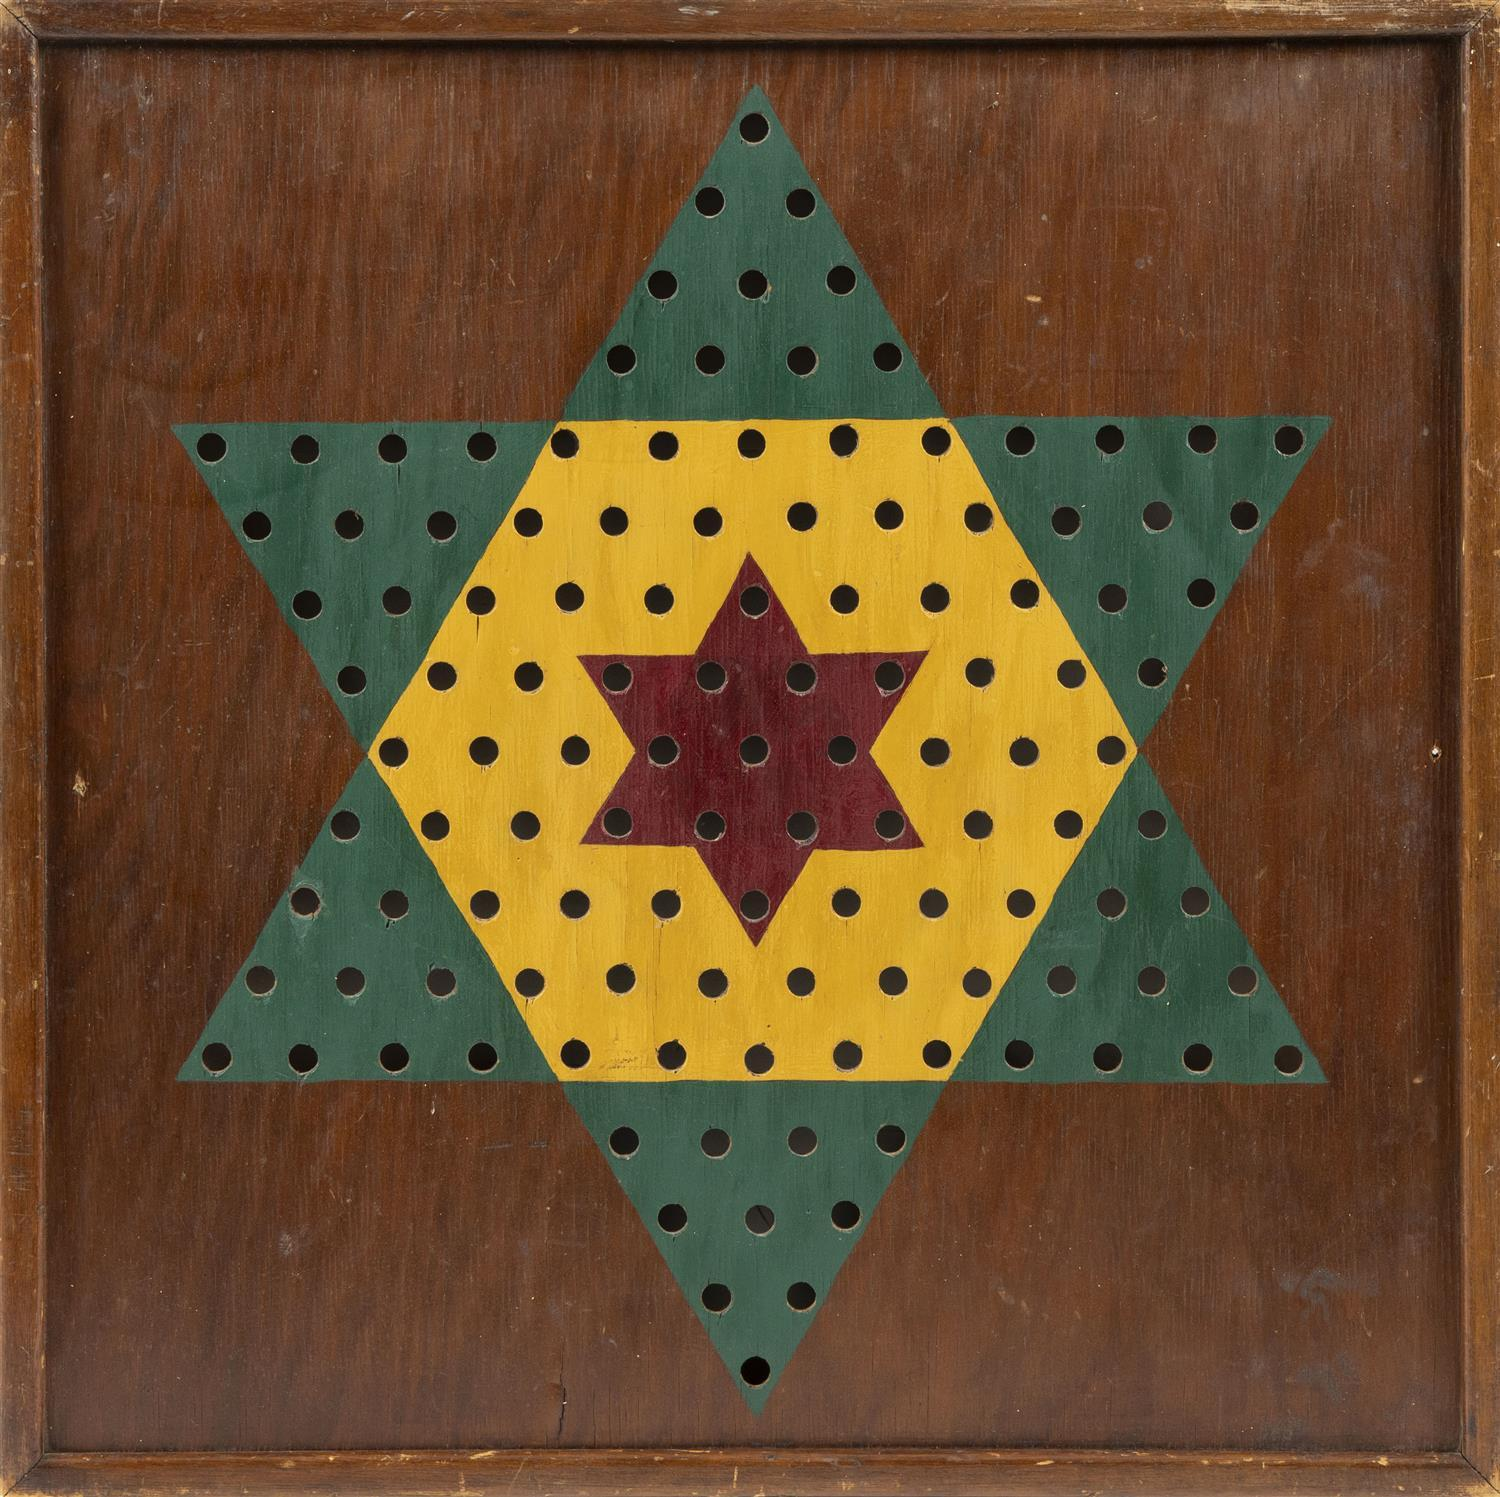 """CHINESE CHECKERS GAME BOARD Pierced playing positions. 25"""" x 25""""."""